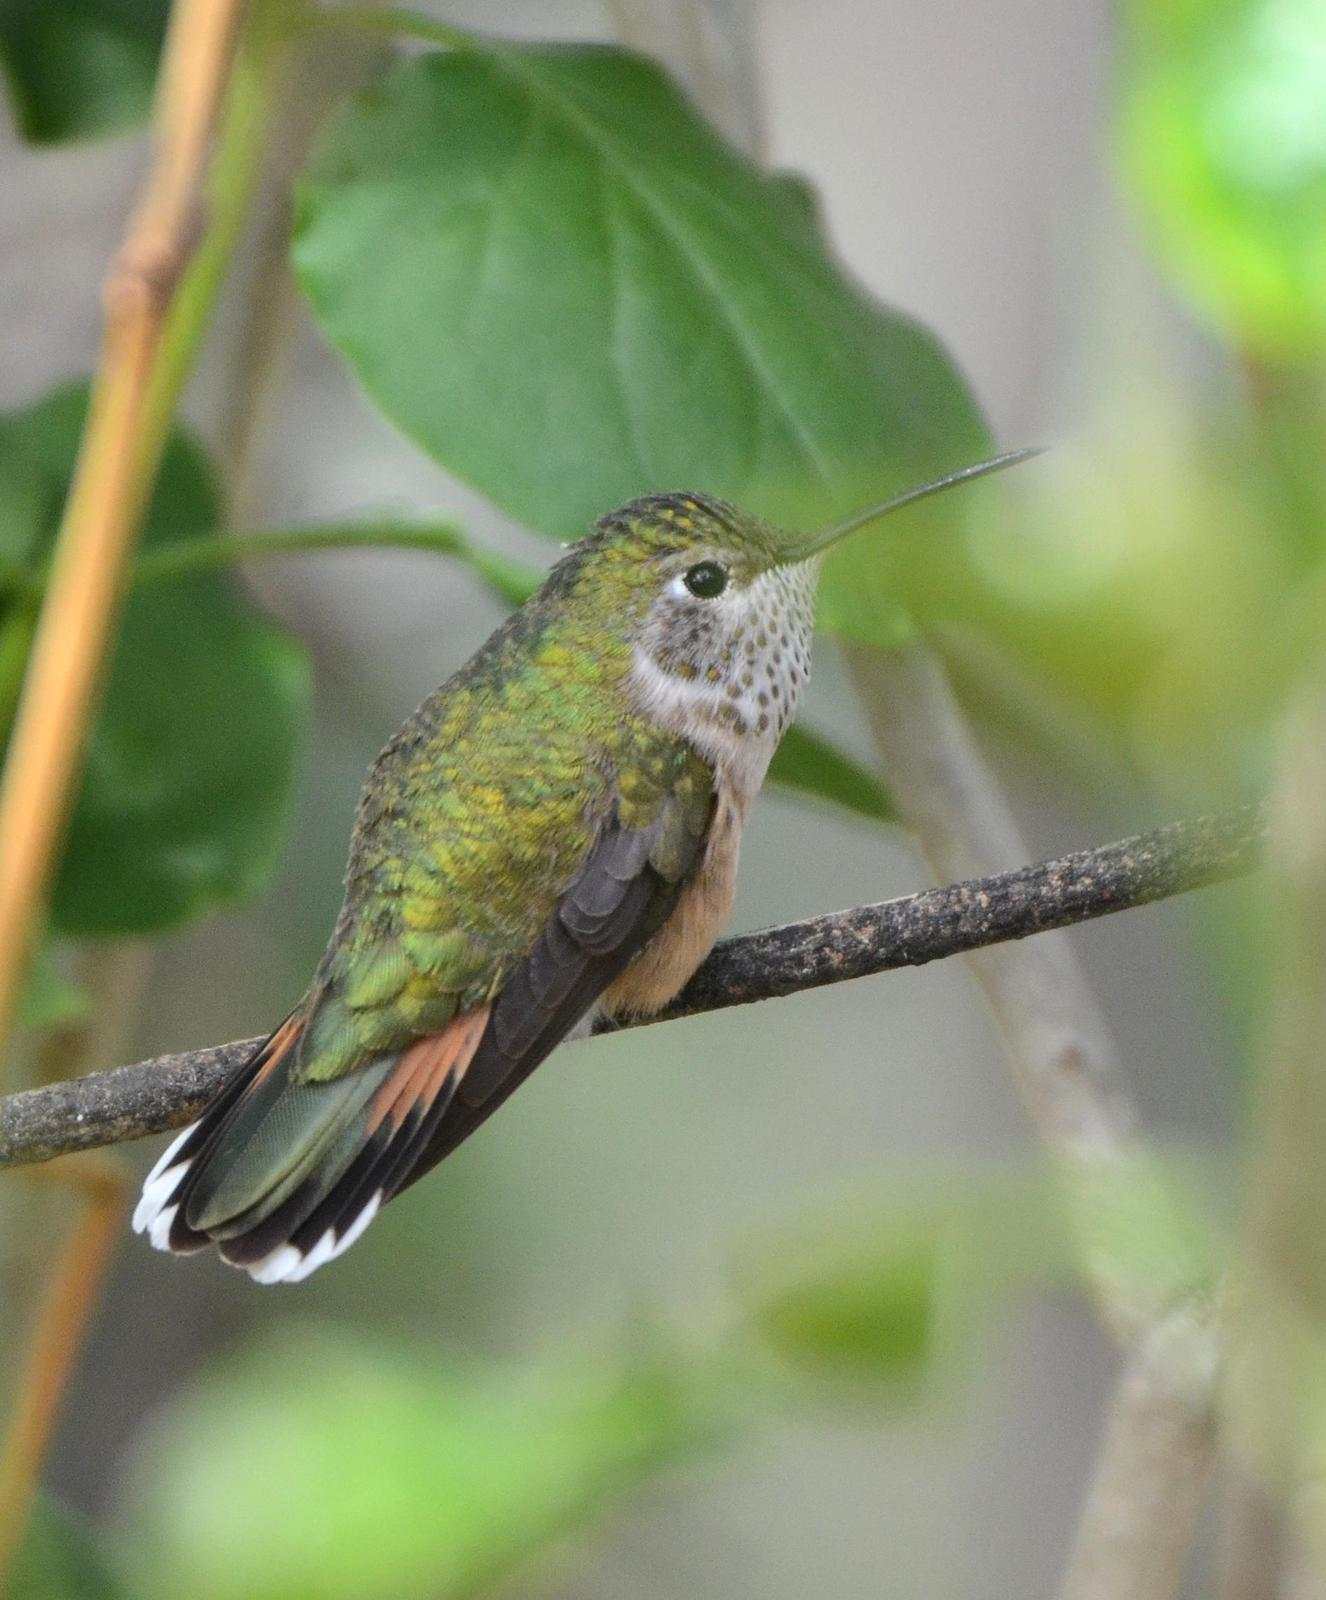 Broad-tailed Hummingbird Photo by Steven Mlodinow